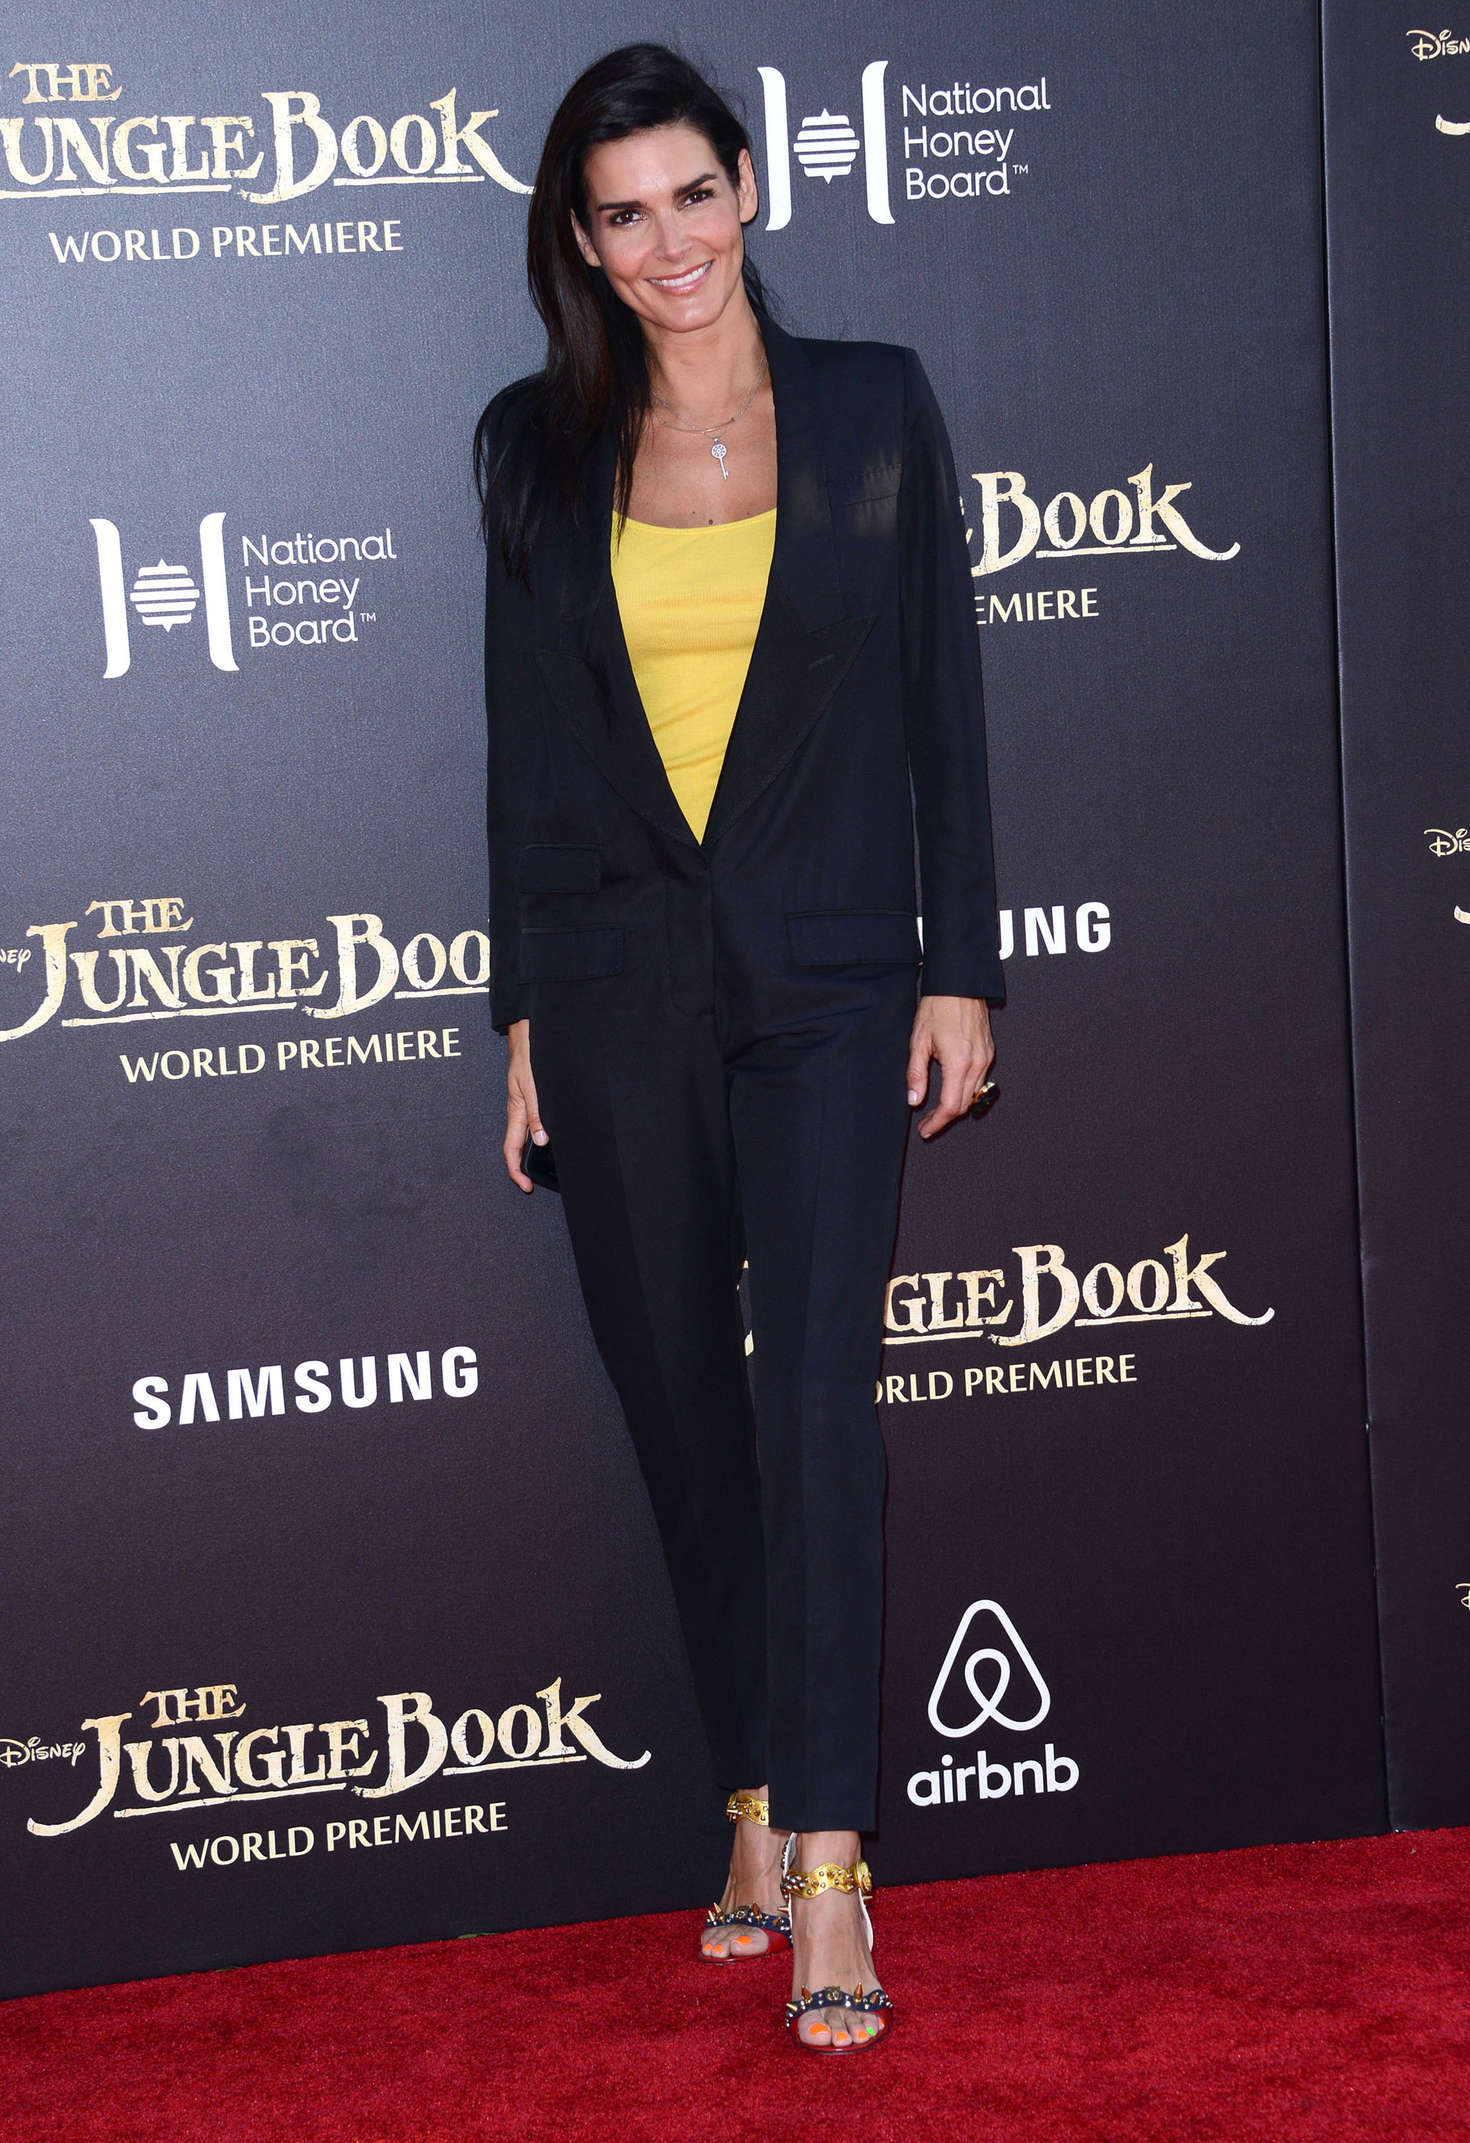 Angie Harmon The Jungle Book Premiere in Hollywood